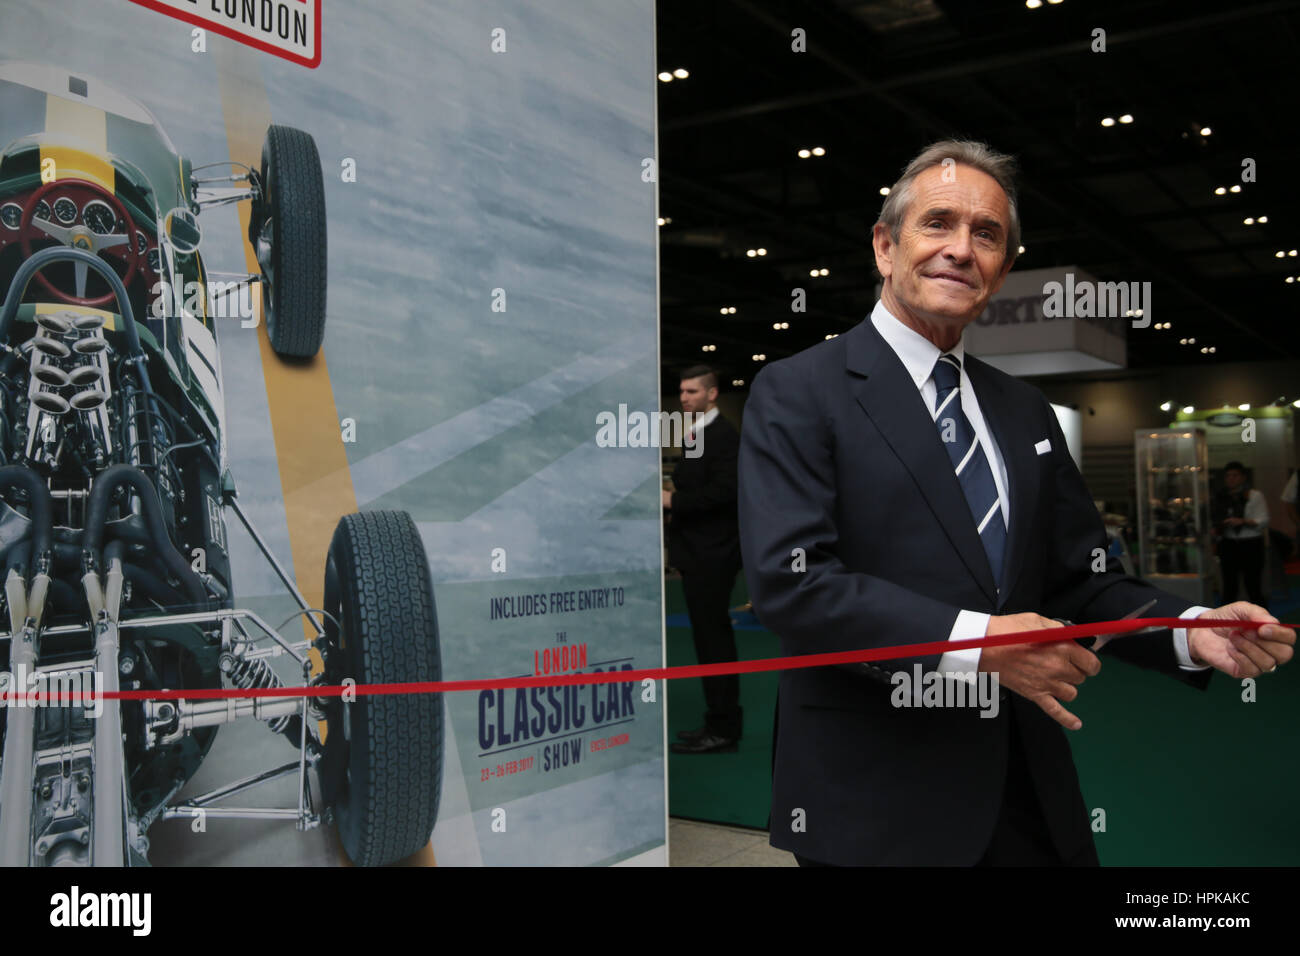 London, UK. 23rd Feb, 2017. Le Mans Legend Jacky Ickx Belgian former racing car driver who won the 24 hours of Le - Stock Image